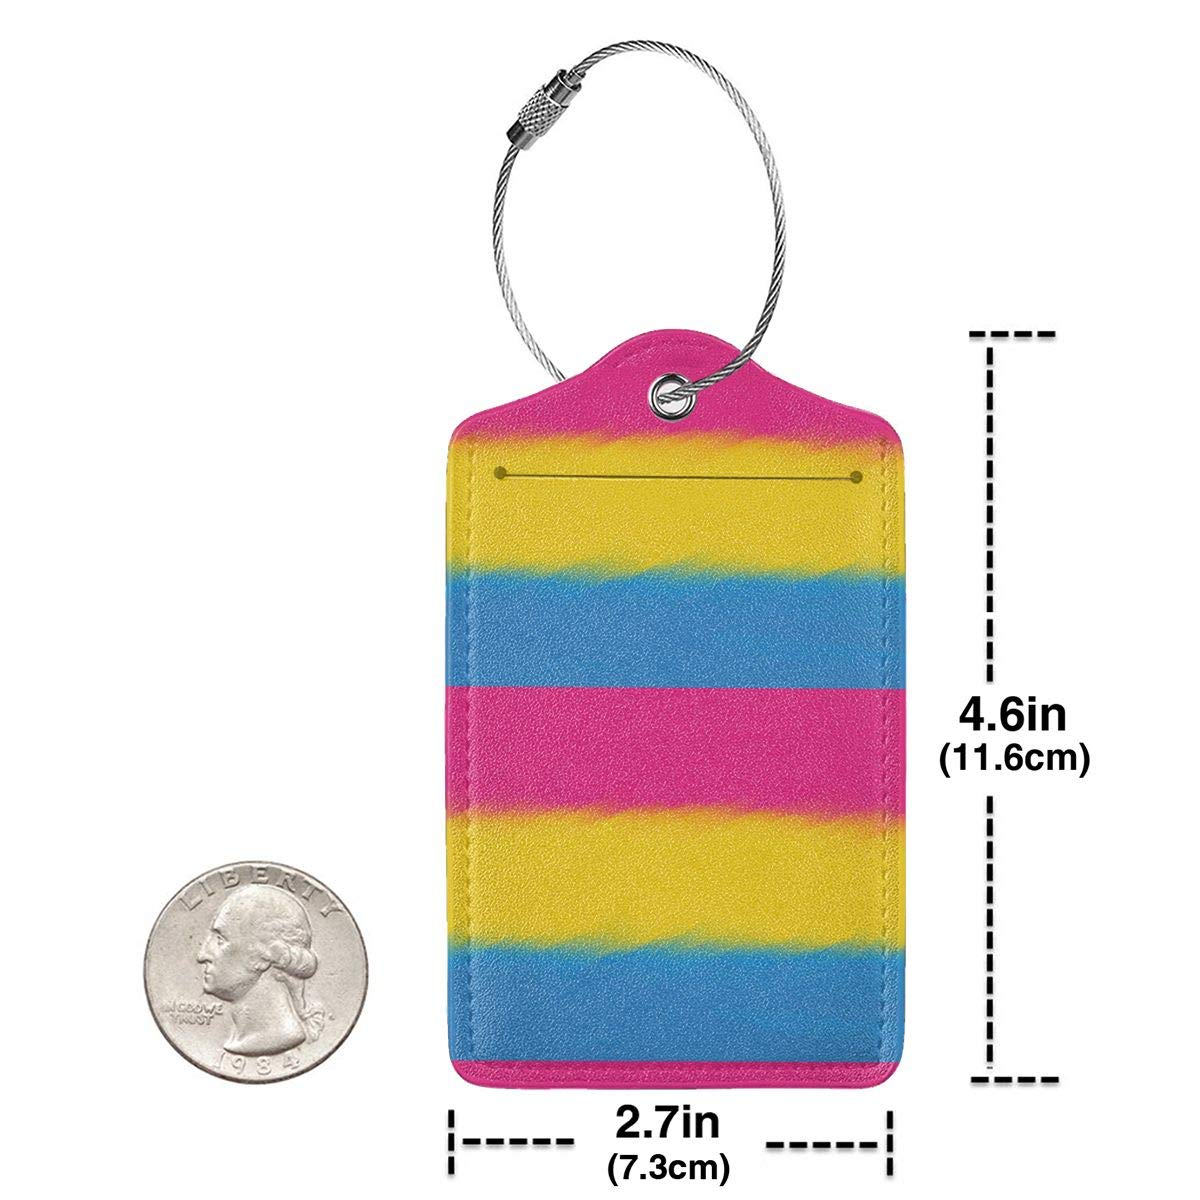 Pansexuality Flag 2.7 x 4.6 Blank Tag Leather Luggage Tags Full Privacy Cover and Stainless Steel Loop 1 2 4 Pcs Set Key Tags for Christmas Birthday Couples Gift